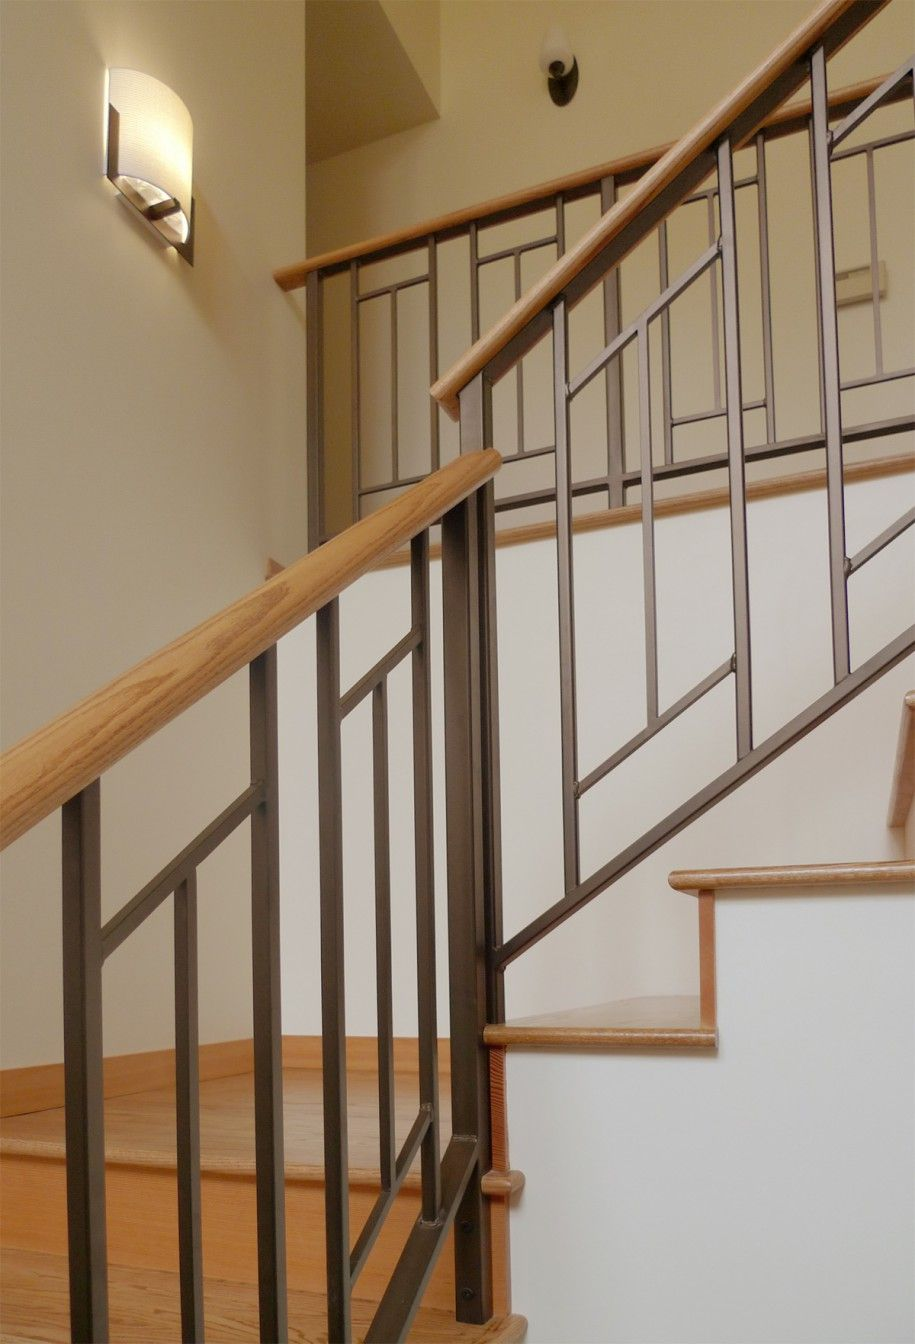 furniture simple and sleek contemporary staircase railings with nice designs from metal and wood materials - Wall Railings Designs